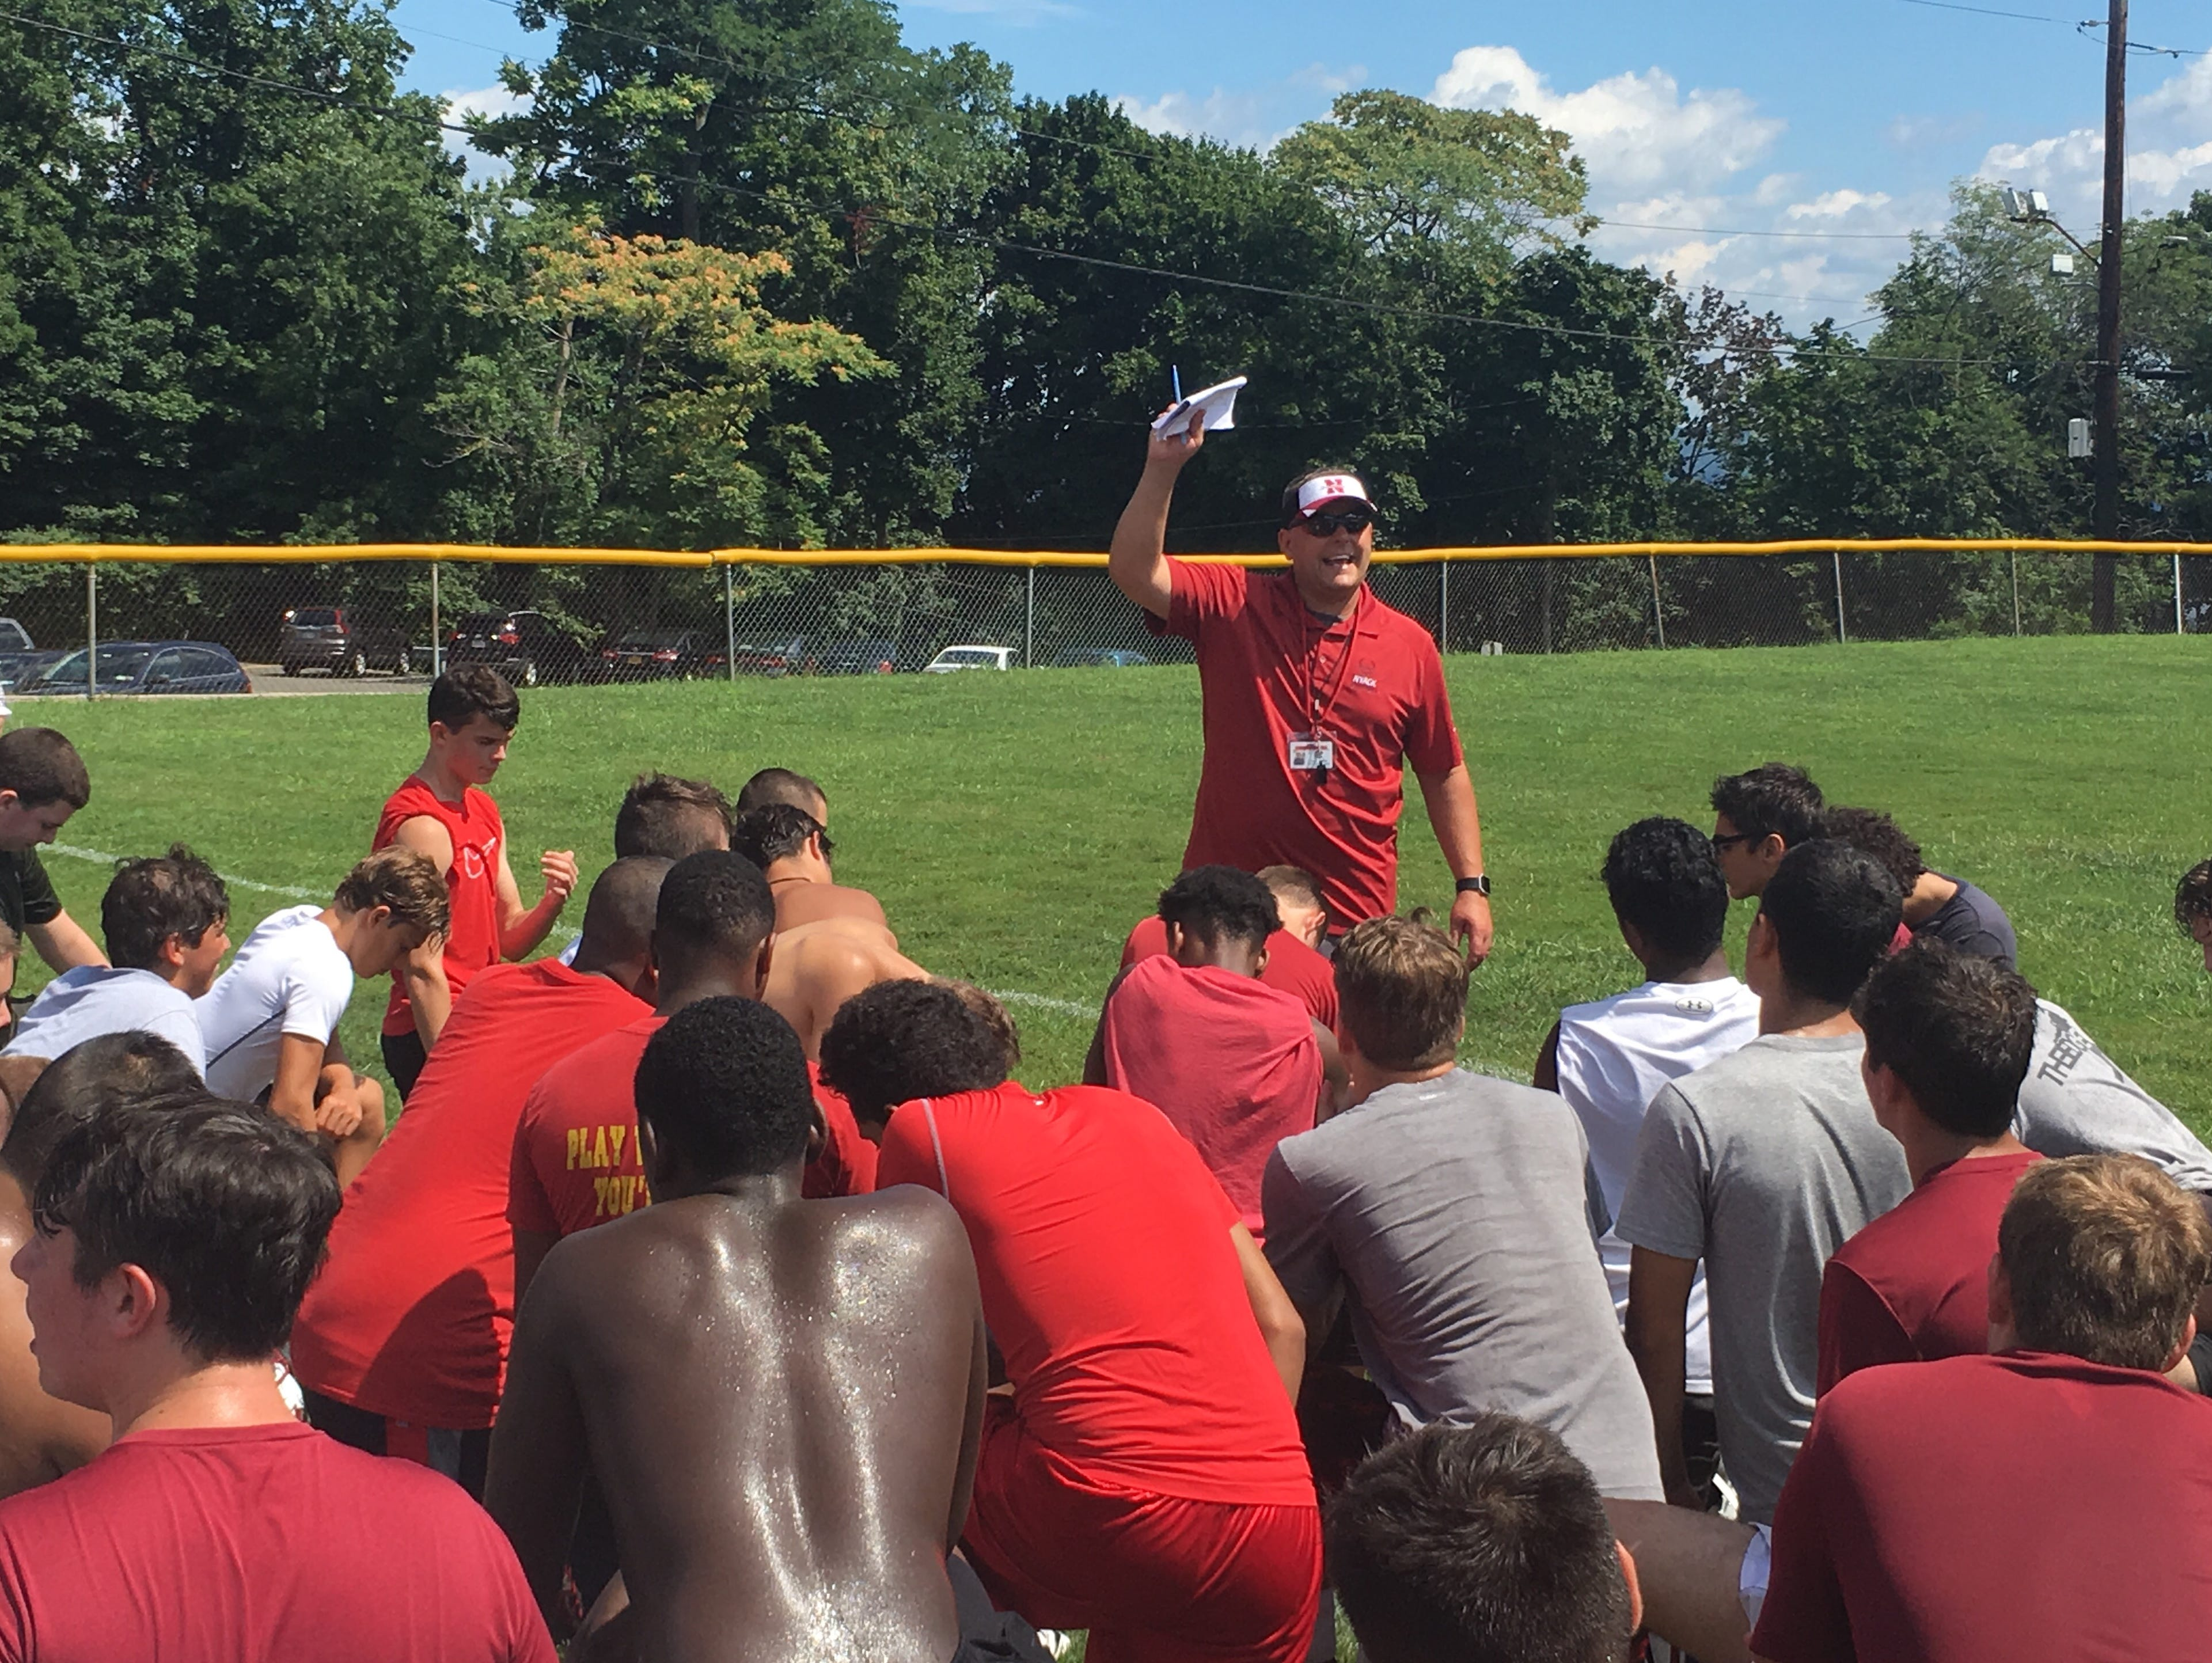 New Nyack football coach Dominick DeMatteo meets with players at the end of their first practice of 2016. At Nyack MS. DeMatteo, who coached nine seasons at Arlington, is the son of Tony DeMatteo, Section 1's all-time winningest coach.